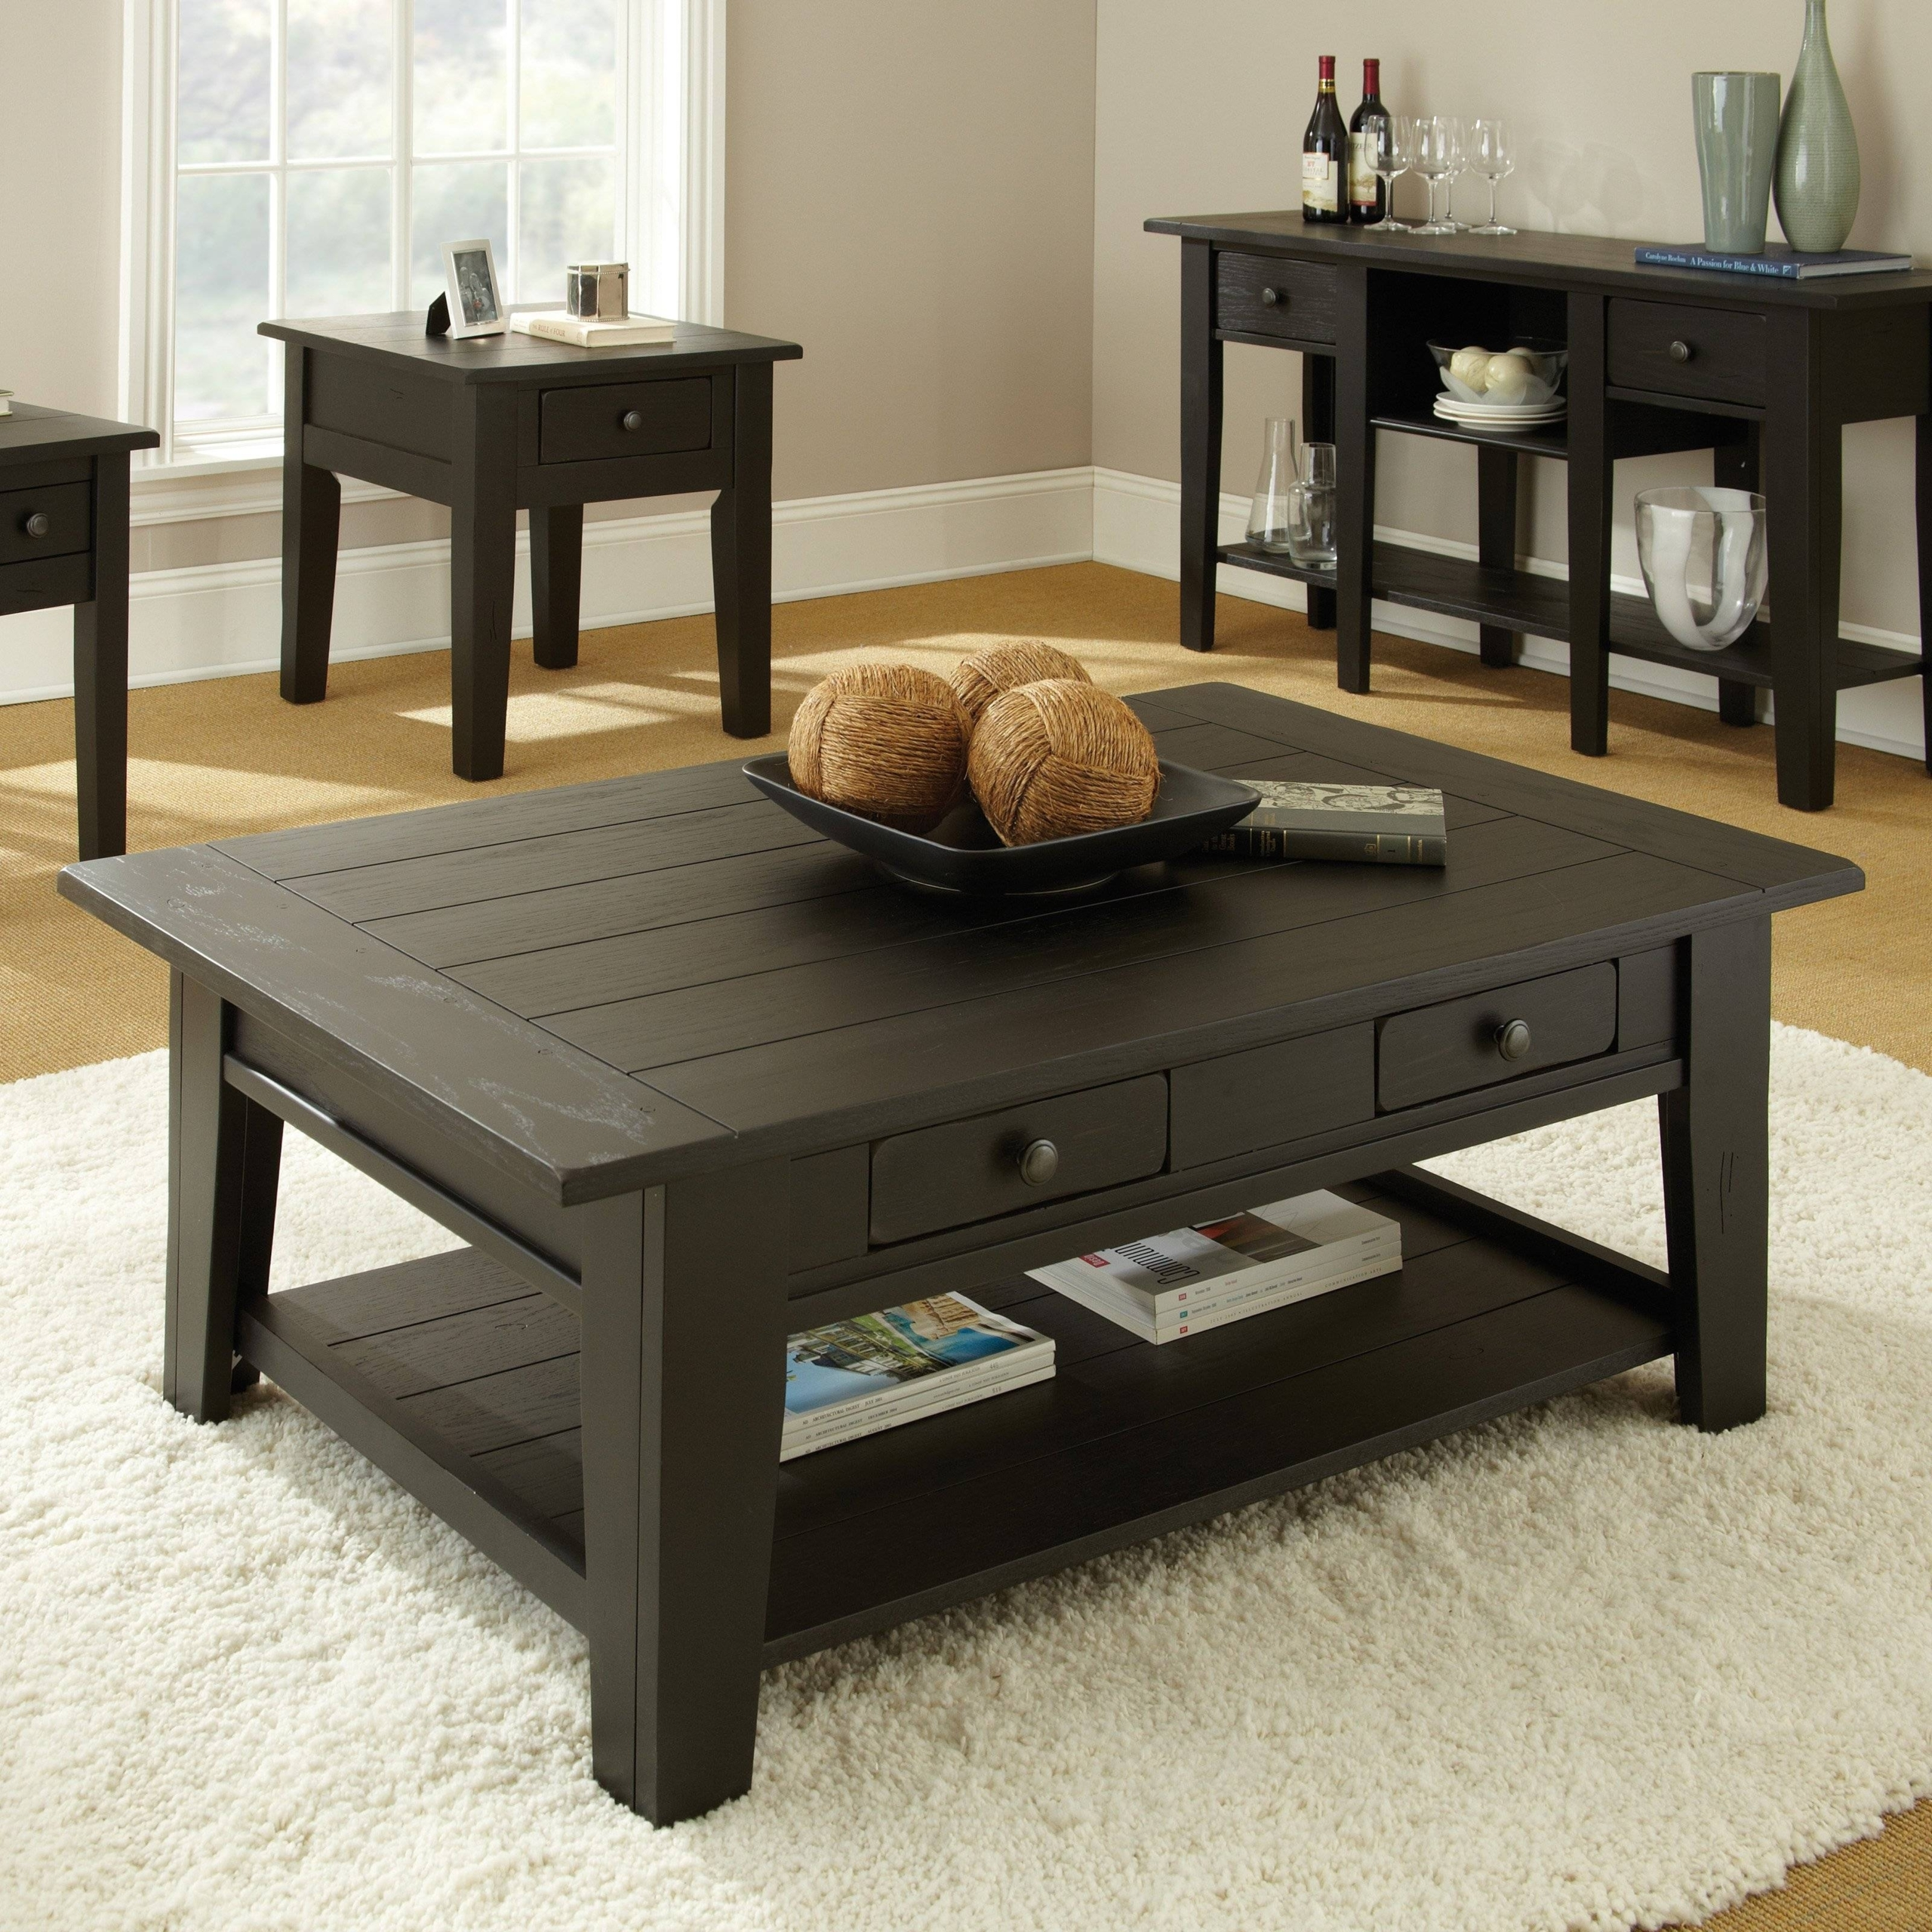 Ordinaire Dark Wood Square Coffee Table